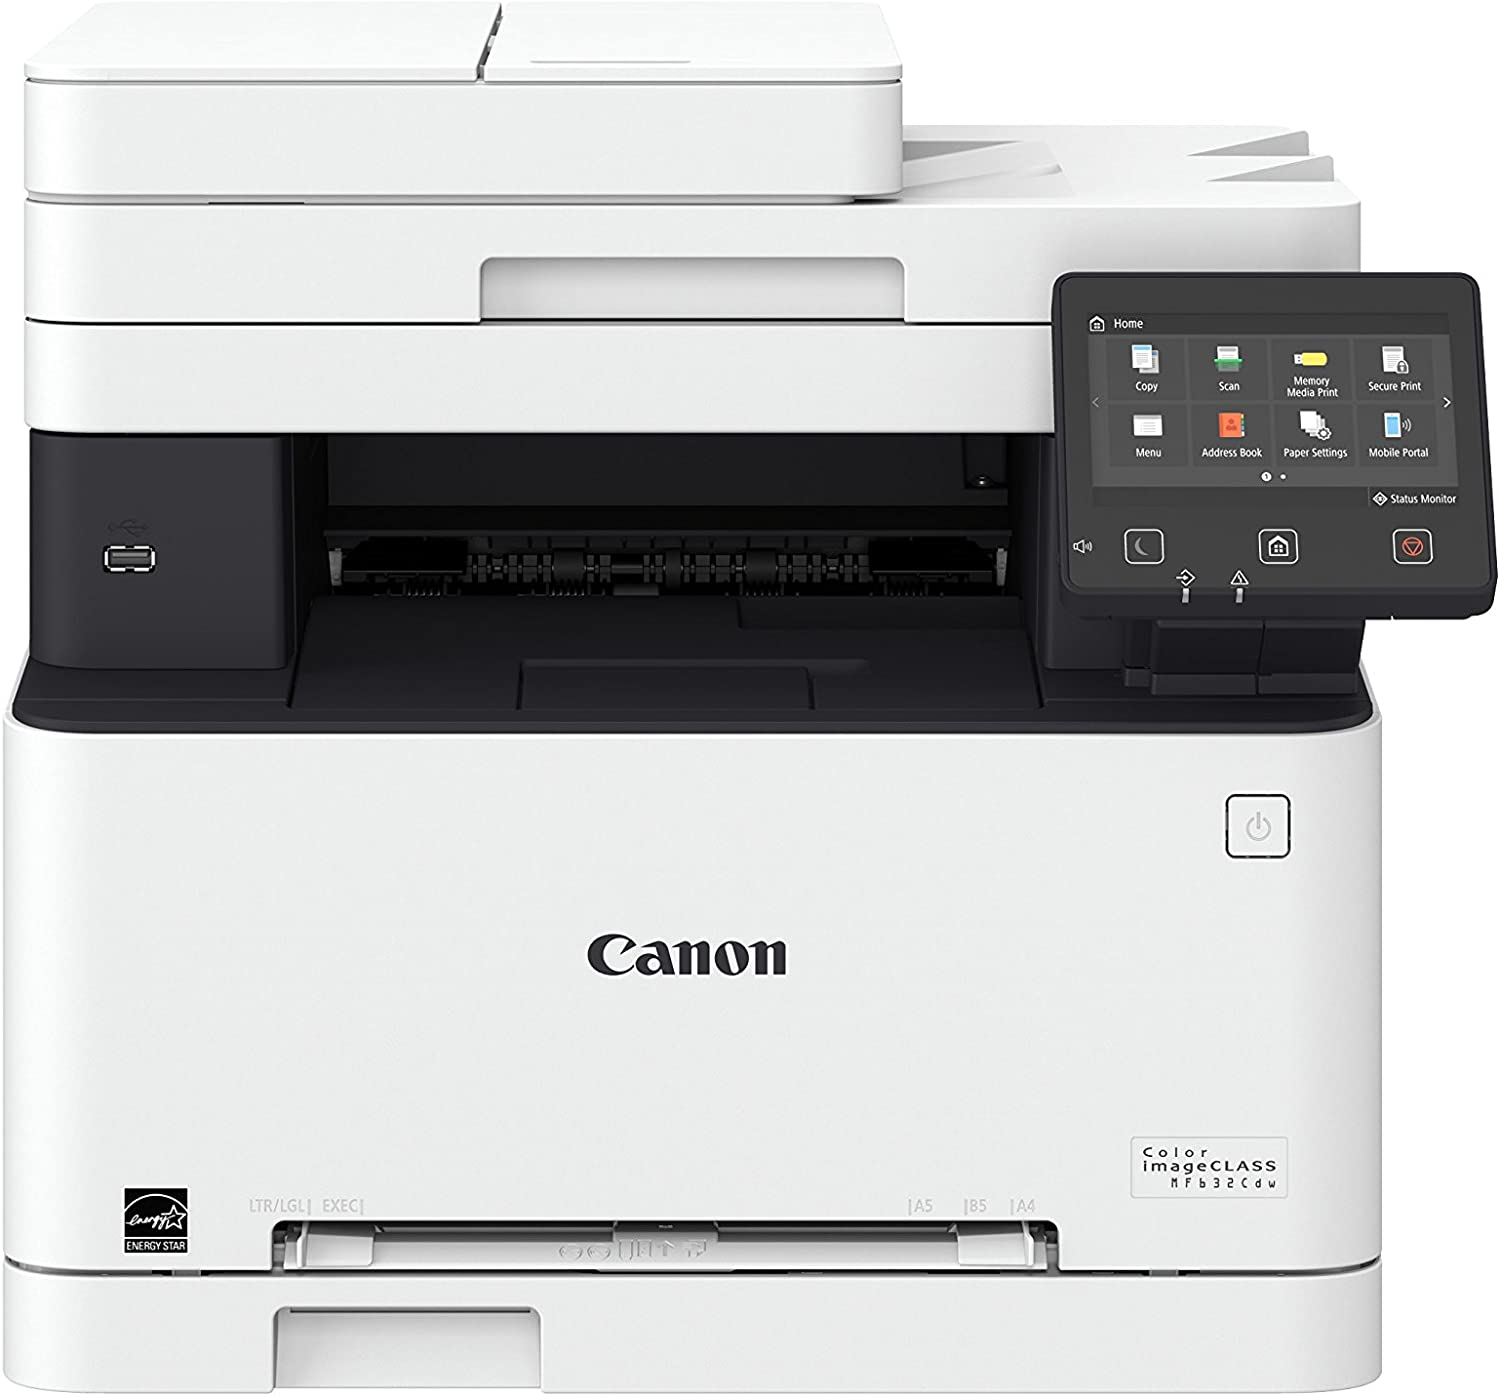 Canon Color imageCLASS MF632Cdw (1475C011) Multifunction, Wireless, Duplex Laser Printer, 19 Pages Per Minute (Comes with 3 Year Limited Warranty), Amazon Dash Replenishment Ready